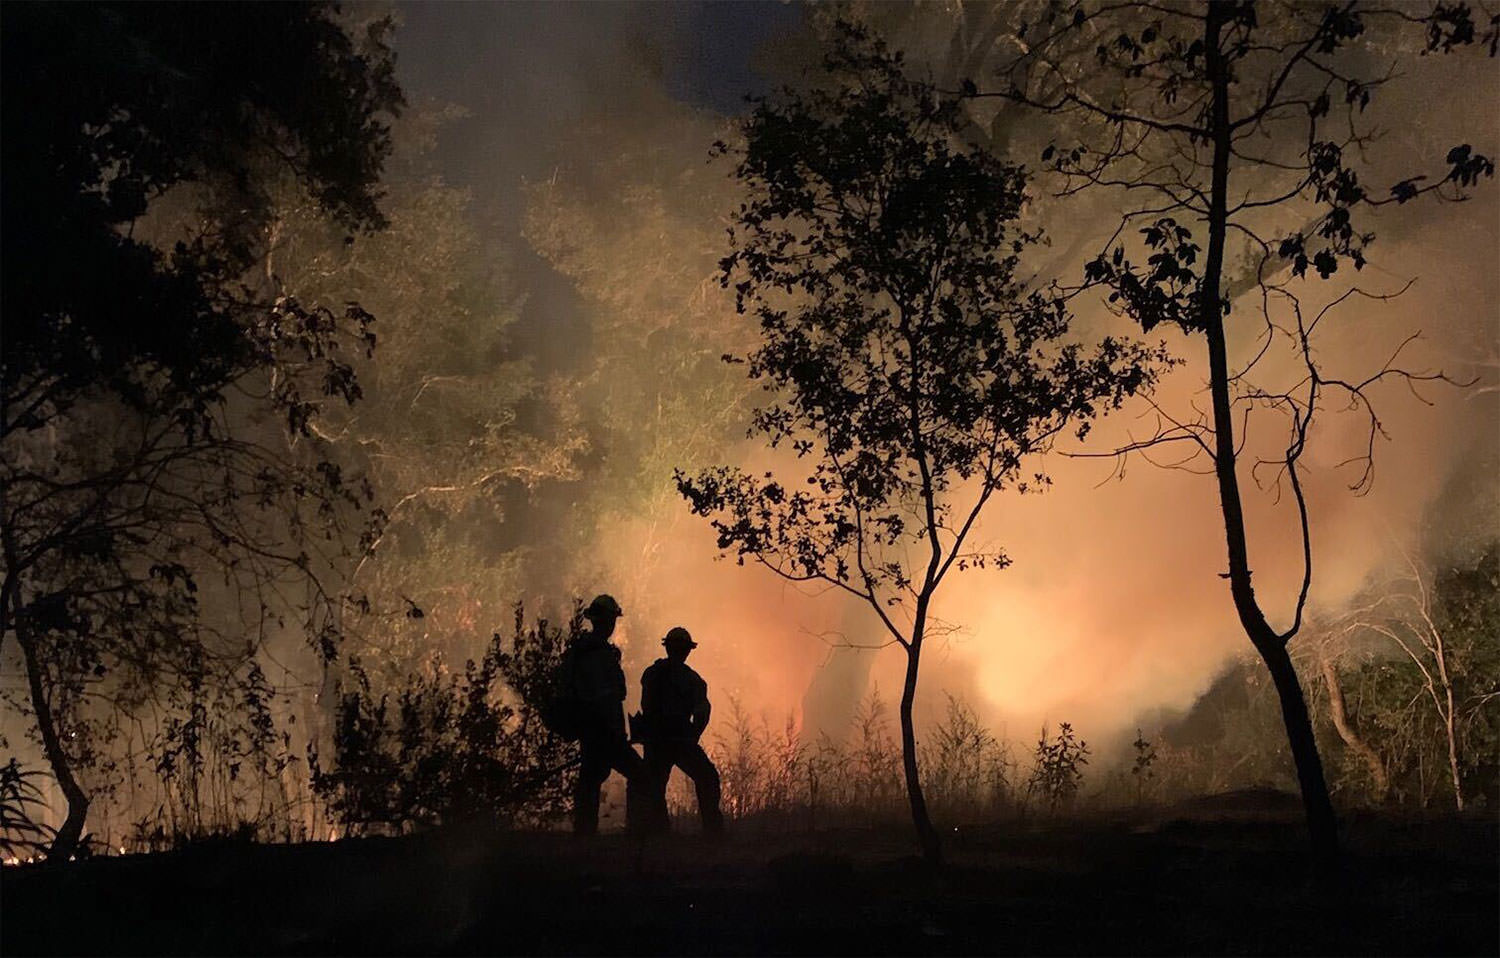 Firefighters look on as the Walbridge Fire burns near Sweetwater Springs Road last summer. (Photo courtesy of Ivan Redus)